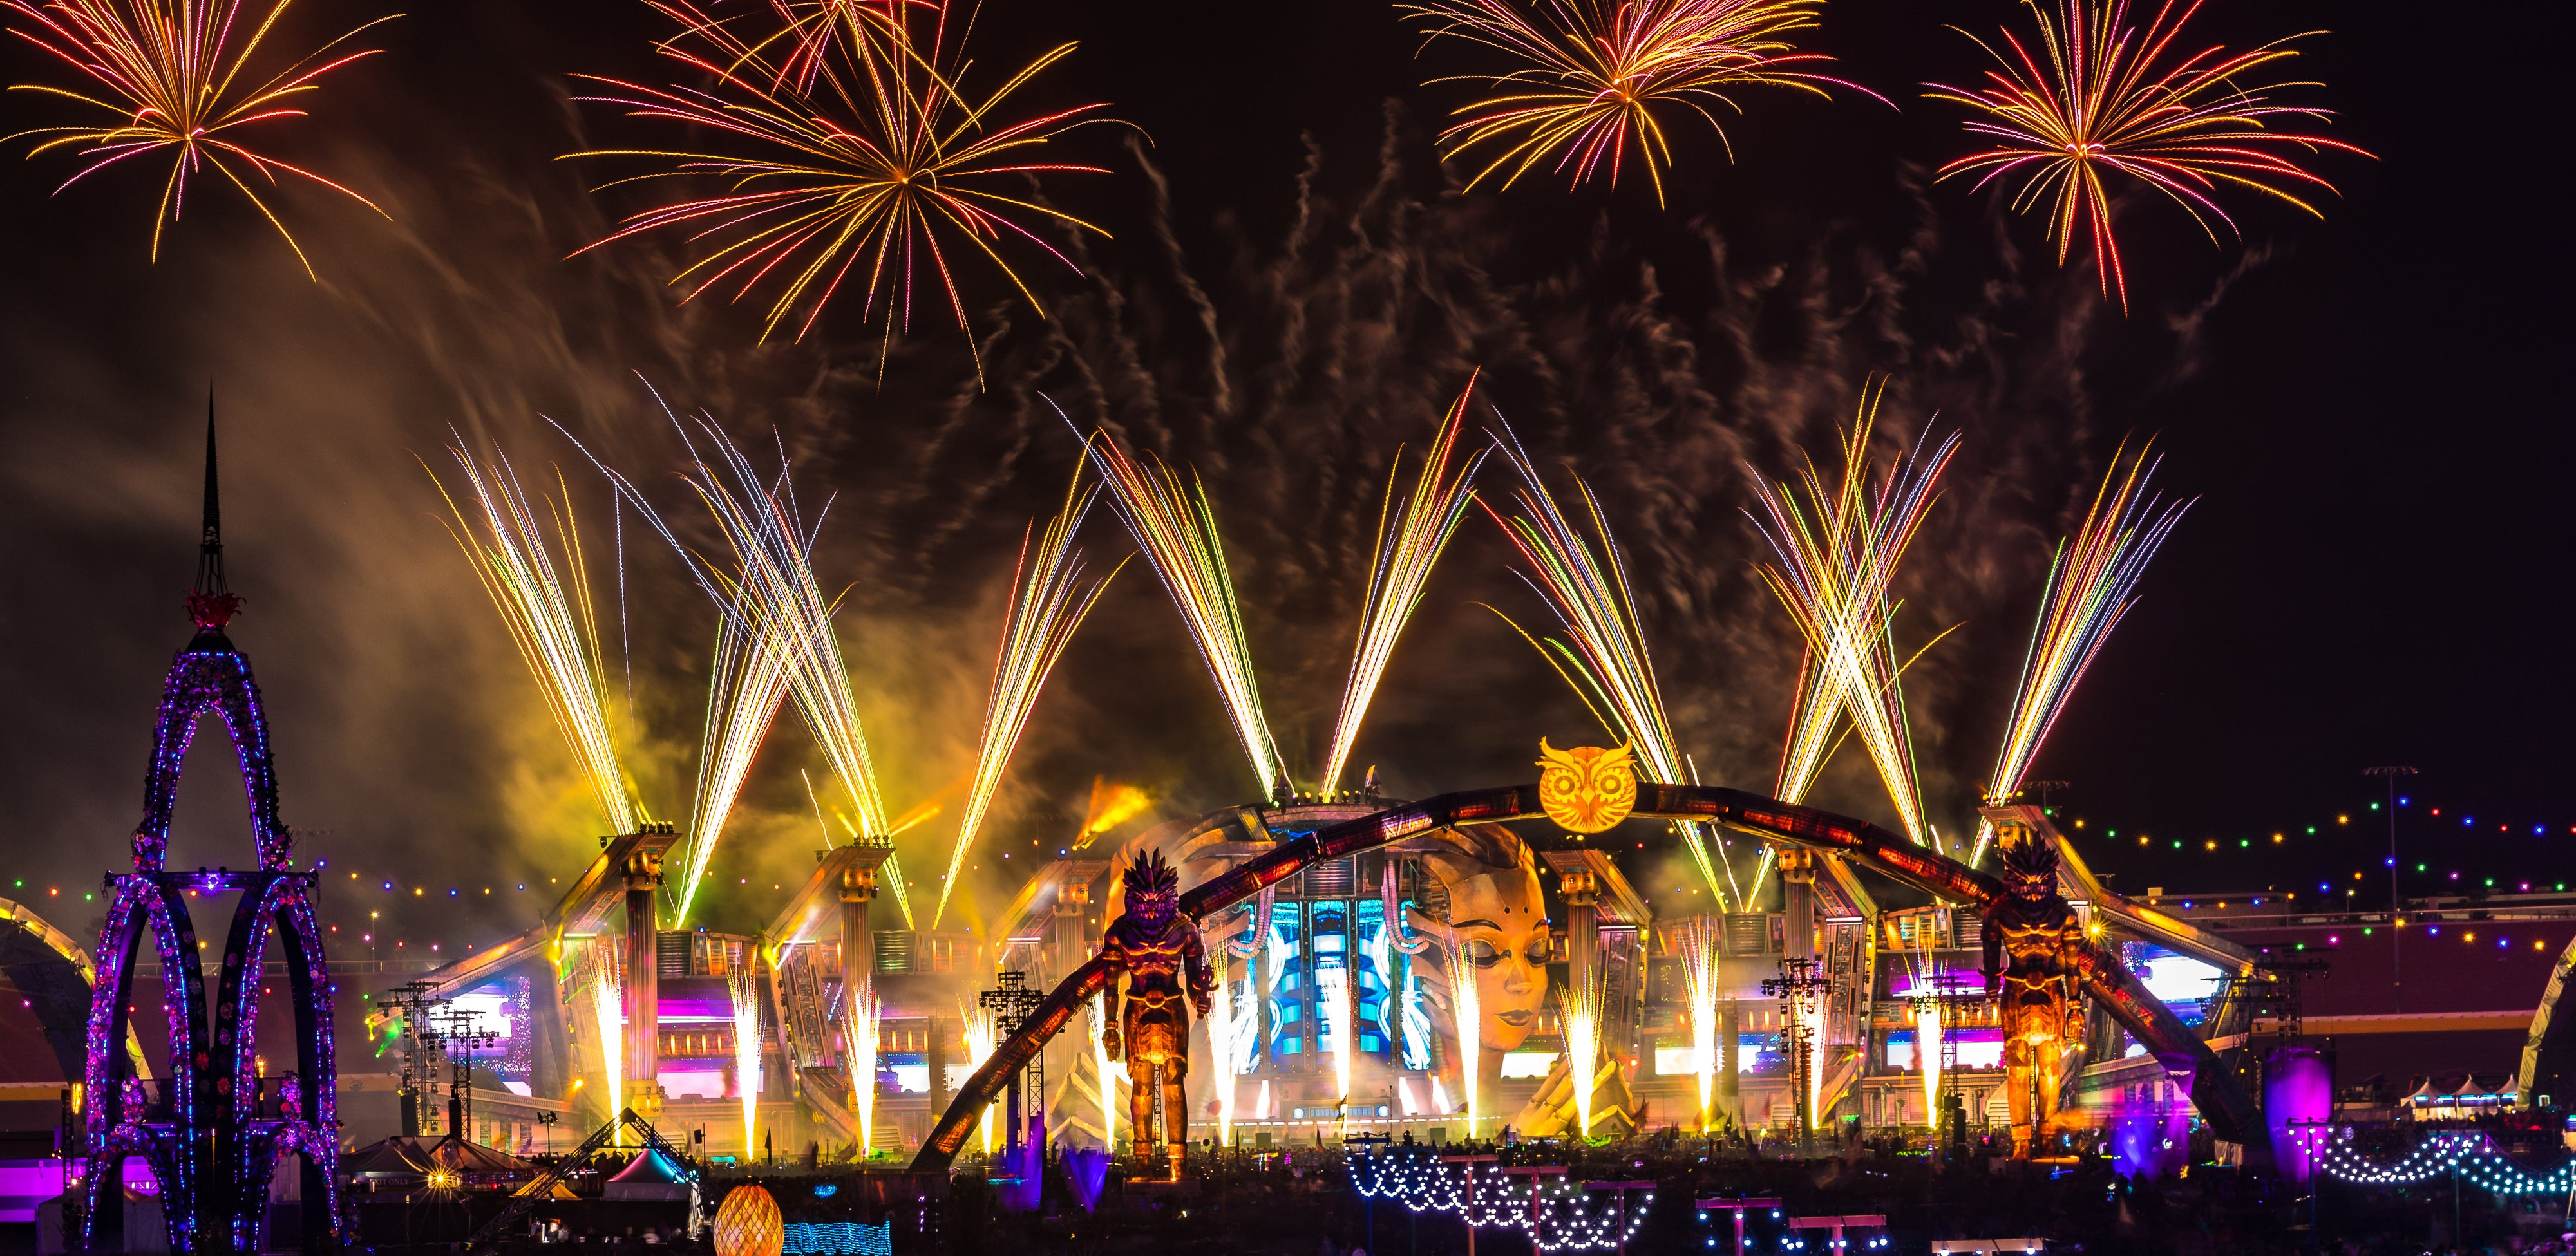 onblast-edm-blog/festival-sets-relive-edc-las-vegas-2019-with-sets-from-your-favorite-artists